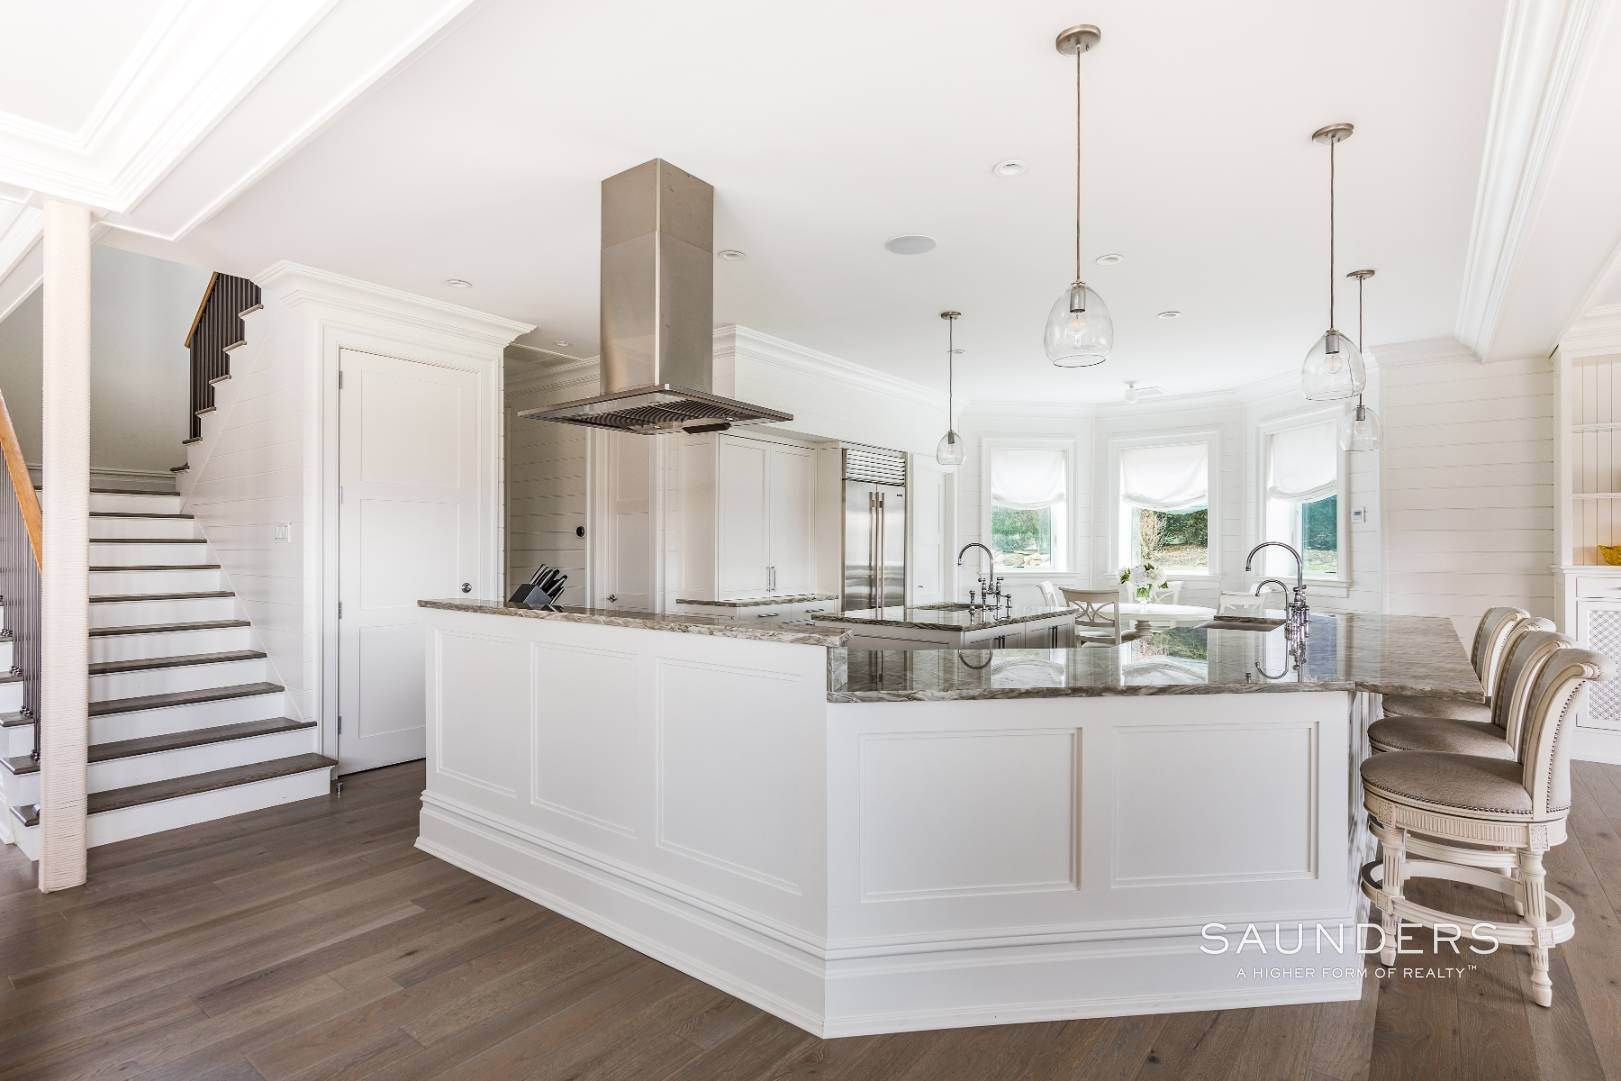 7. Single Family Homes for Sale at Turnkey Masterpiece On The Montauk Golf Course - 5,000+sqft 38 Fairlawn Dr, Montauk, East Hampton Town, NY 11954